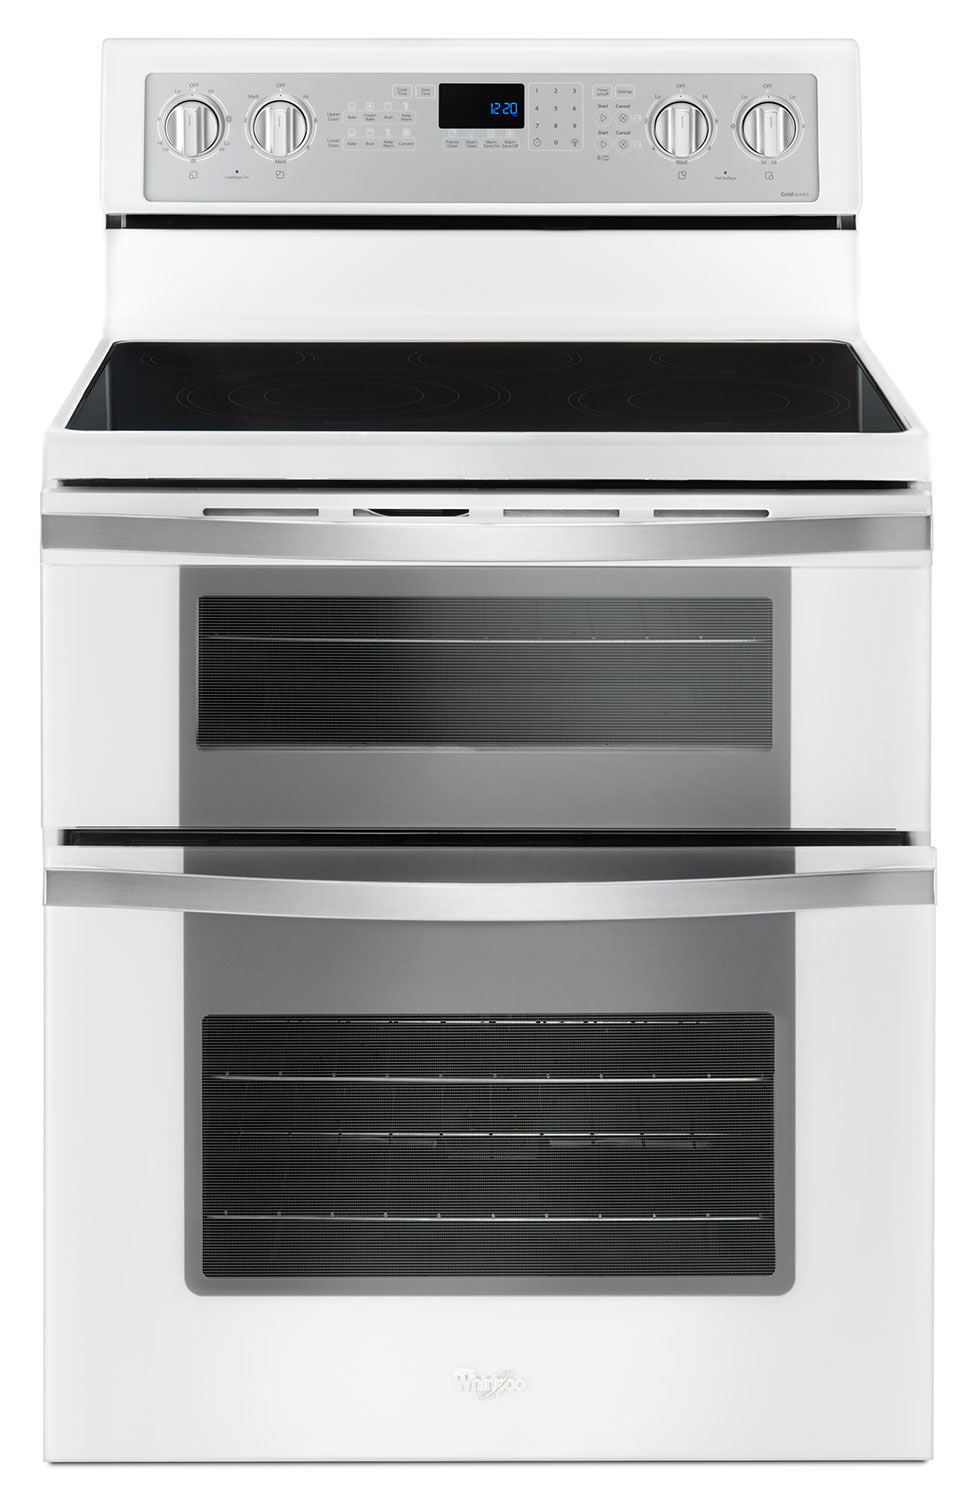 Whirlpool White Electric Double Range (6.7 Cu. Ft.) - YWGE745C0FH